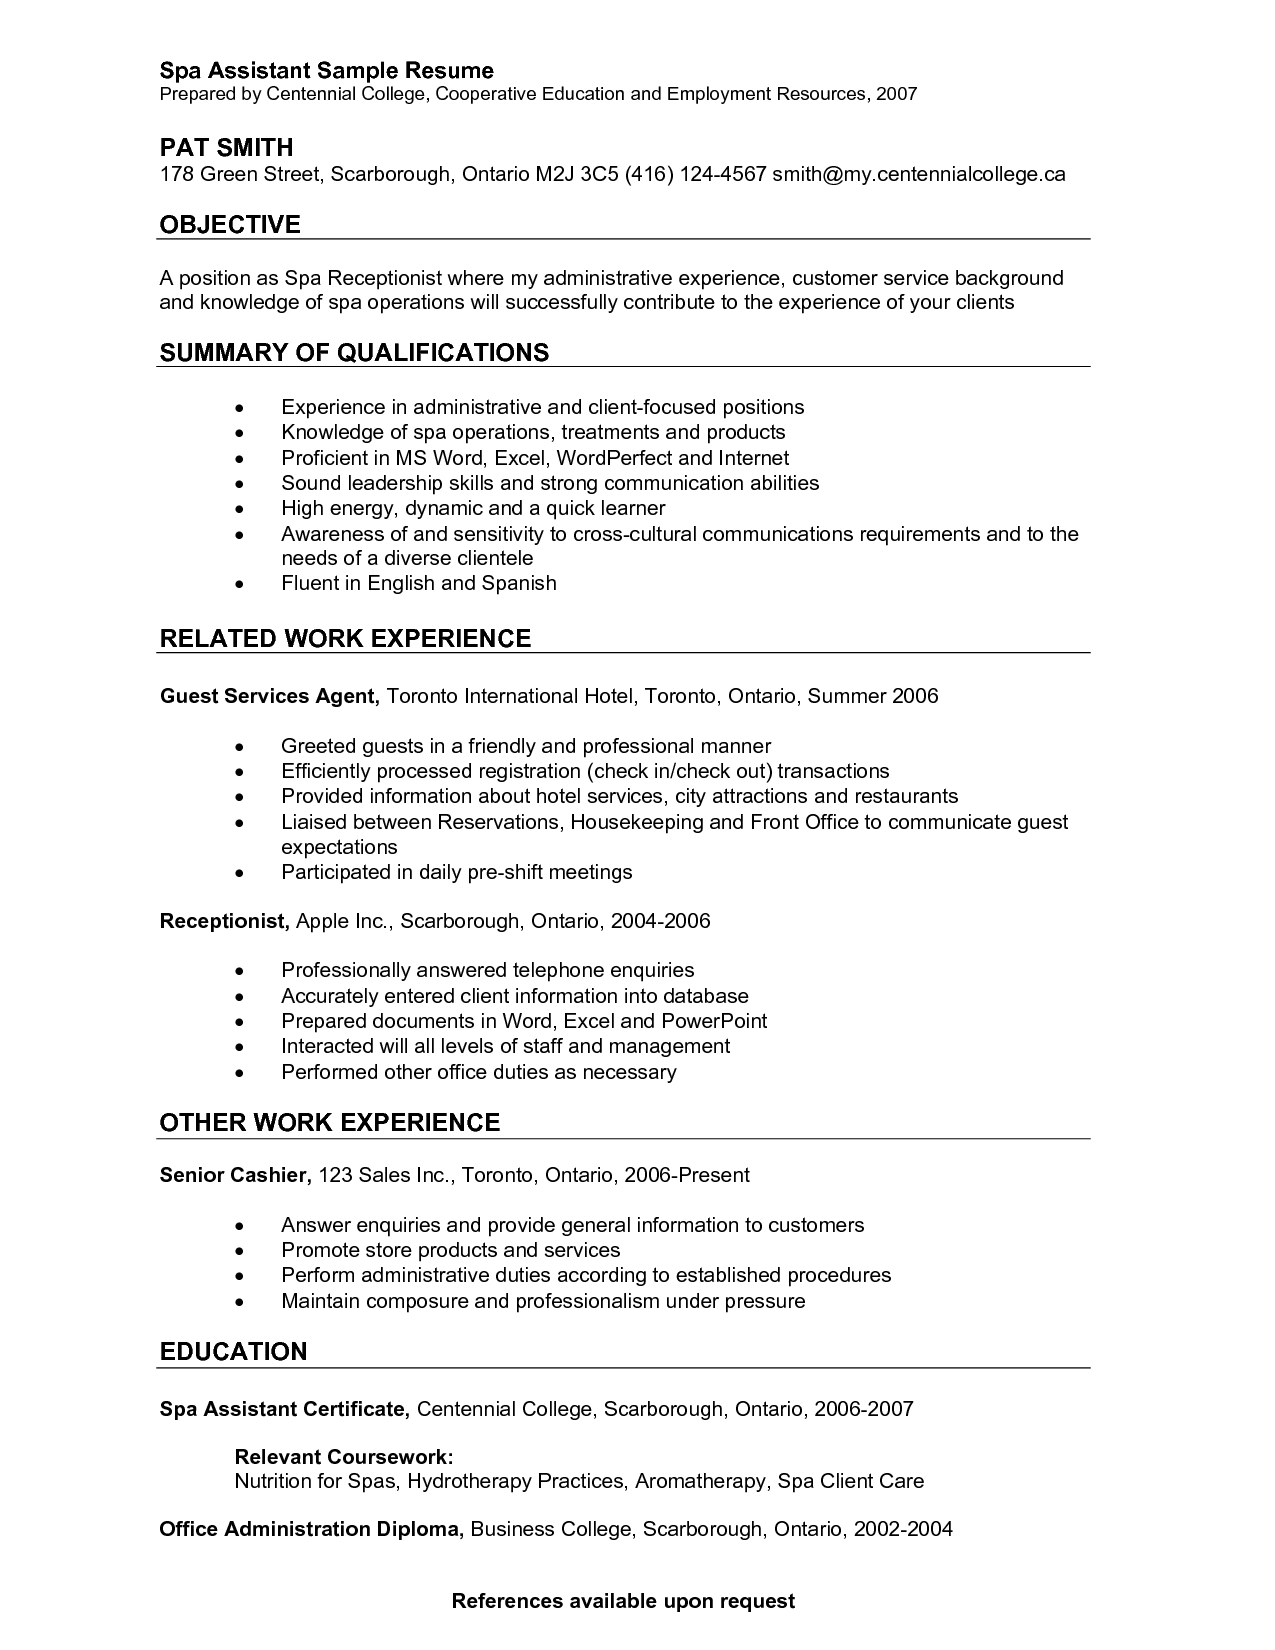 Administrative Assistant Resume Objective Examples Medical Receptionist Resume Objective Samples  Resume  Pinterest